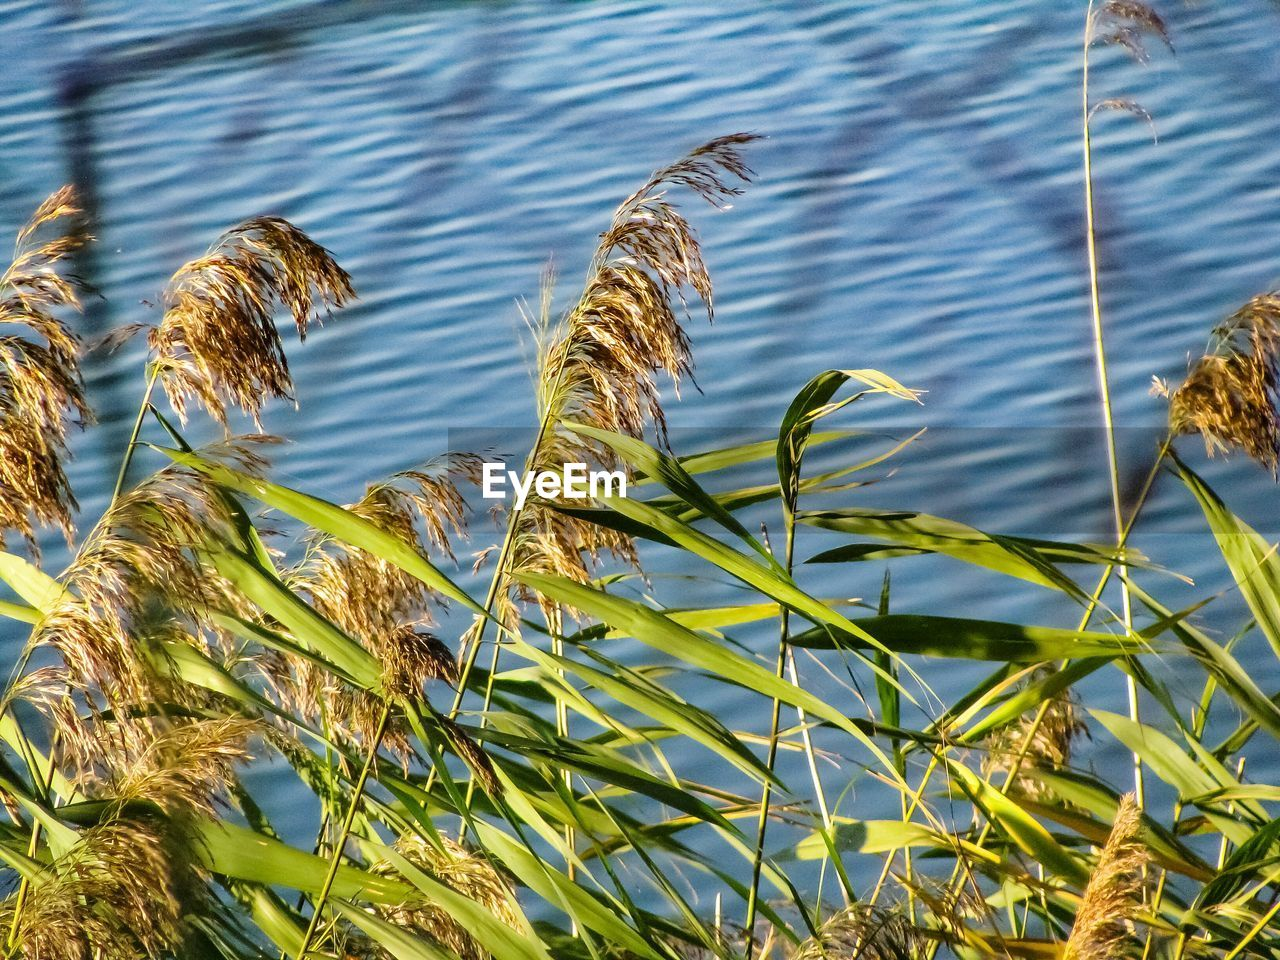 growth, nature, water, plant, lake, outdoors, no people, day, tranquility, beauty in nature, green color, grass, close-up